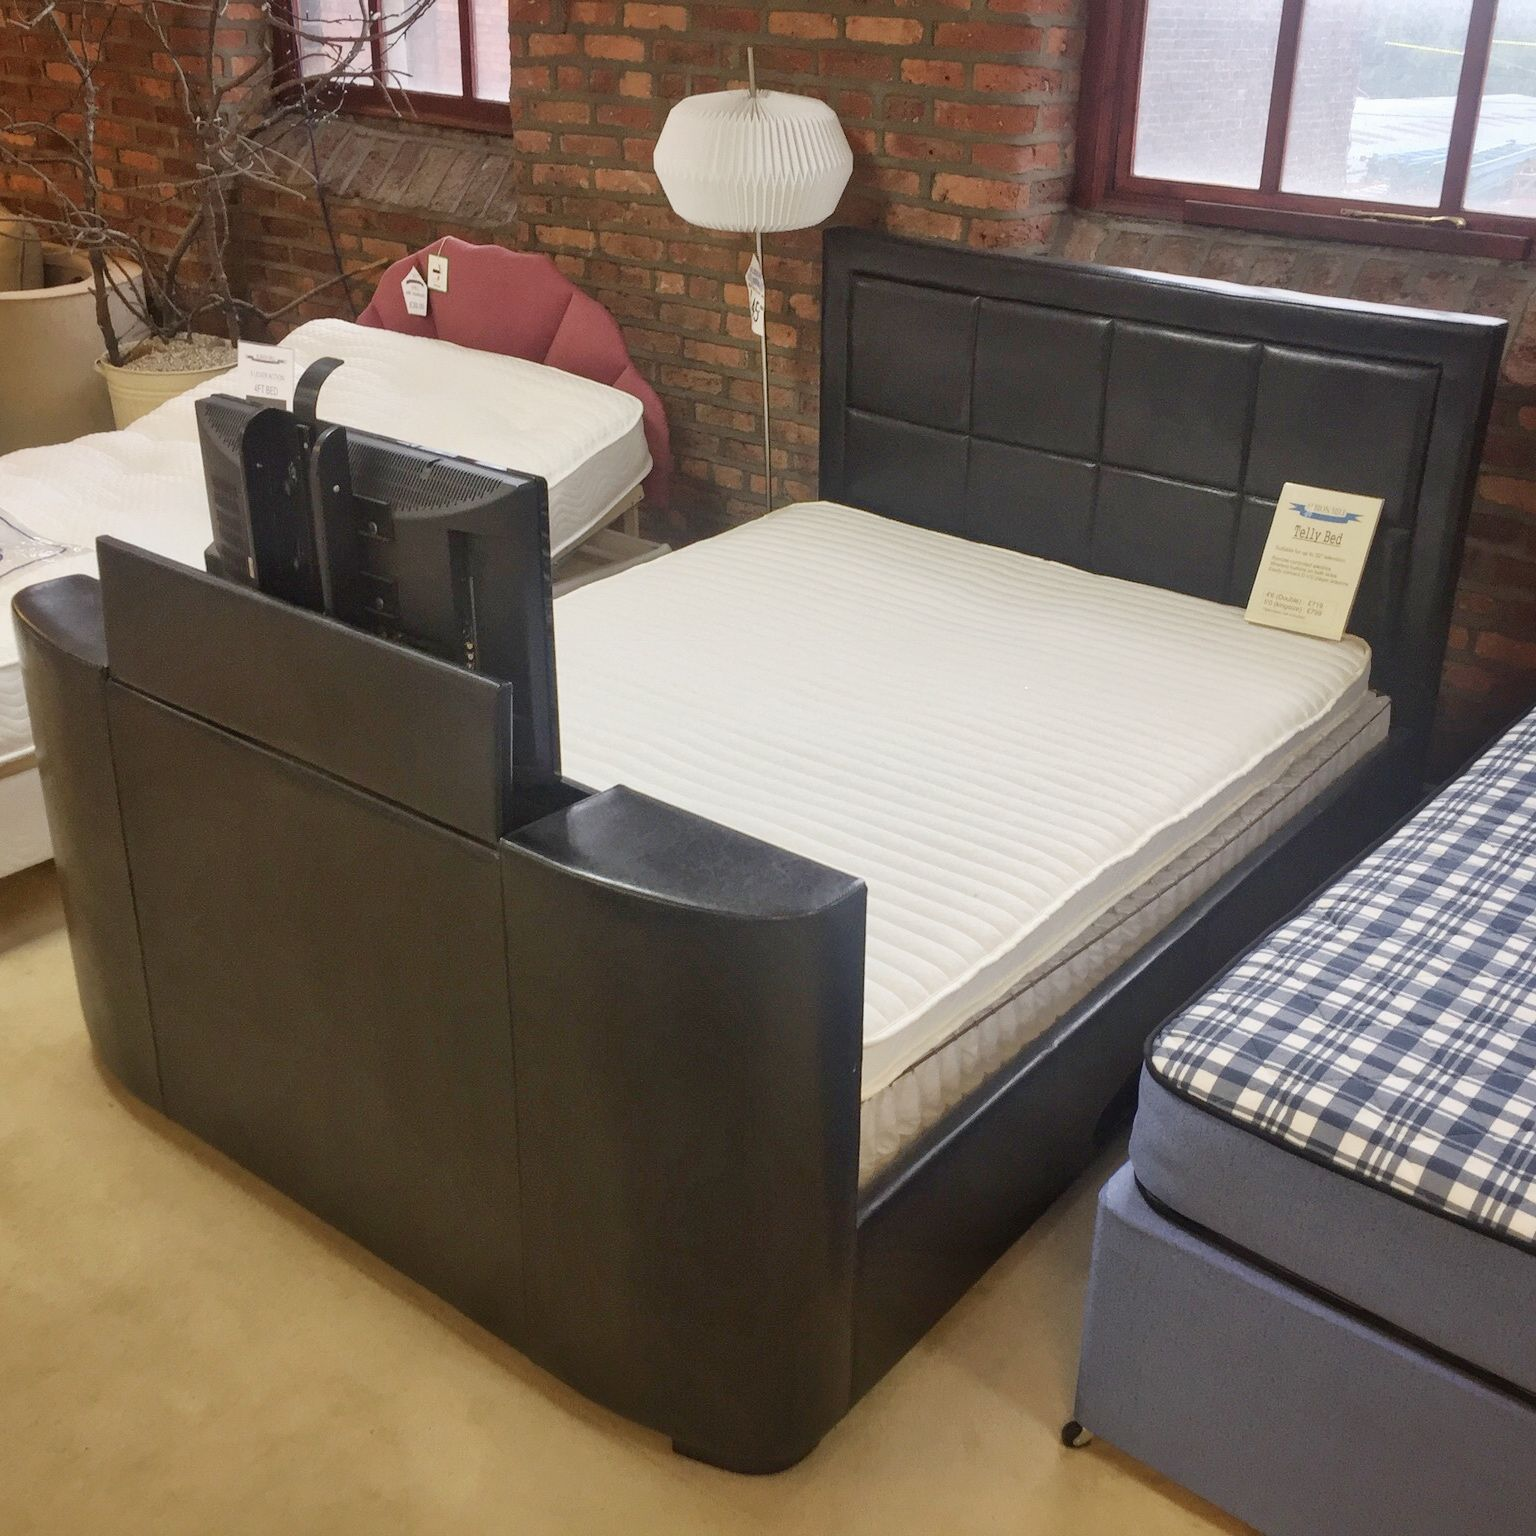 Telly Bed A Quality Bed With Built In Tv Stand Bed Bed Centre